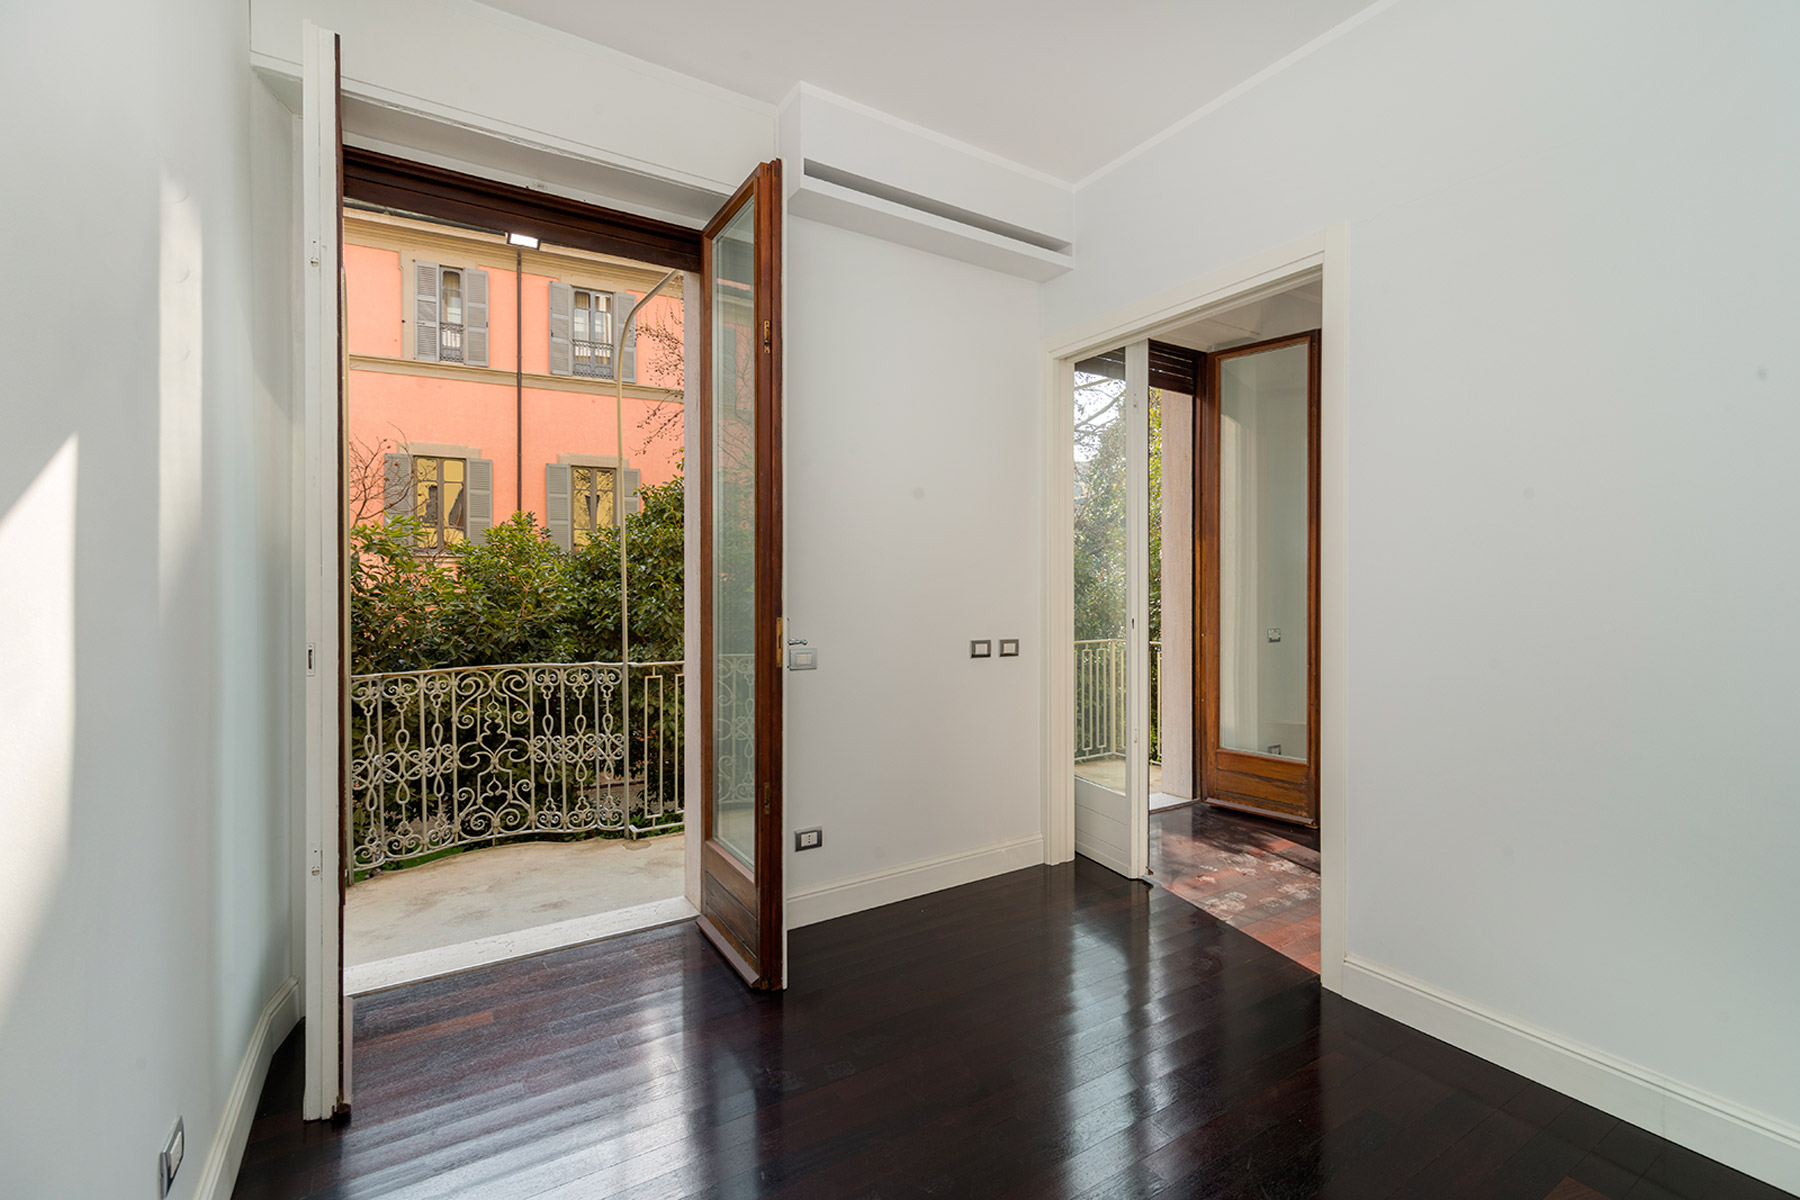 Additional photo for property listing at Elegant apartment near the Opera Theatre Alla Scala Via Manzoni Milano, Milan 20121 Italie